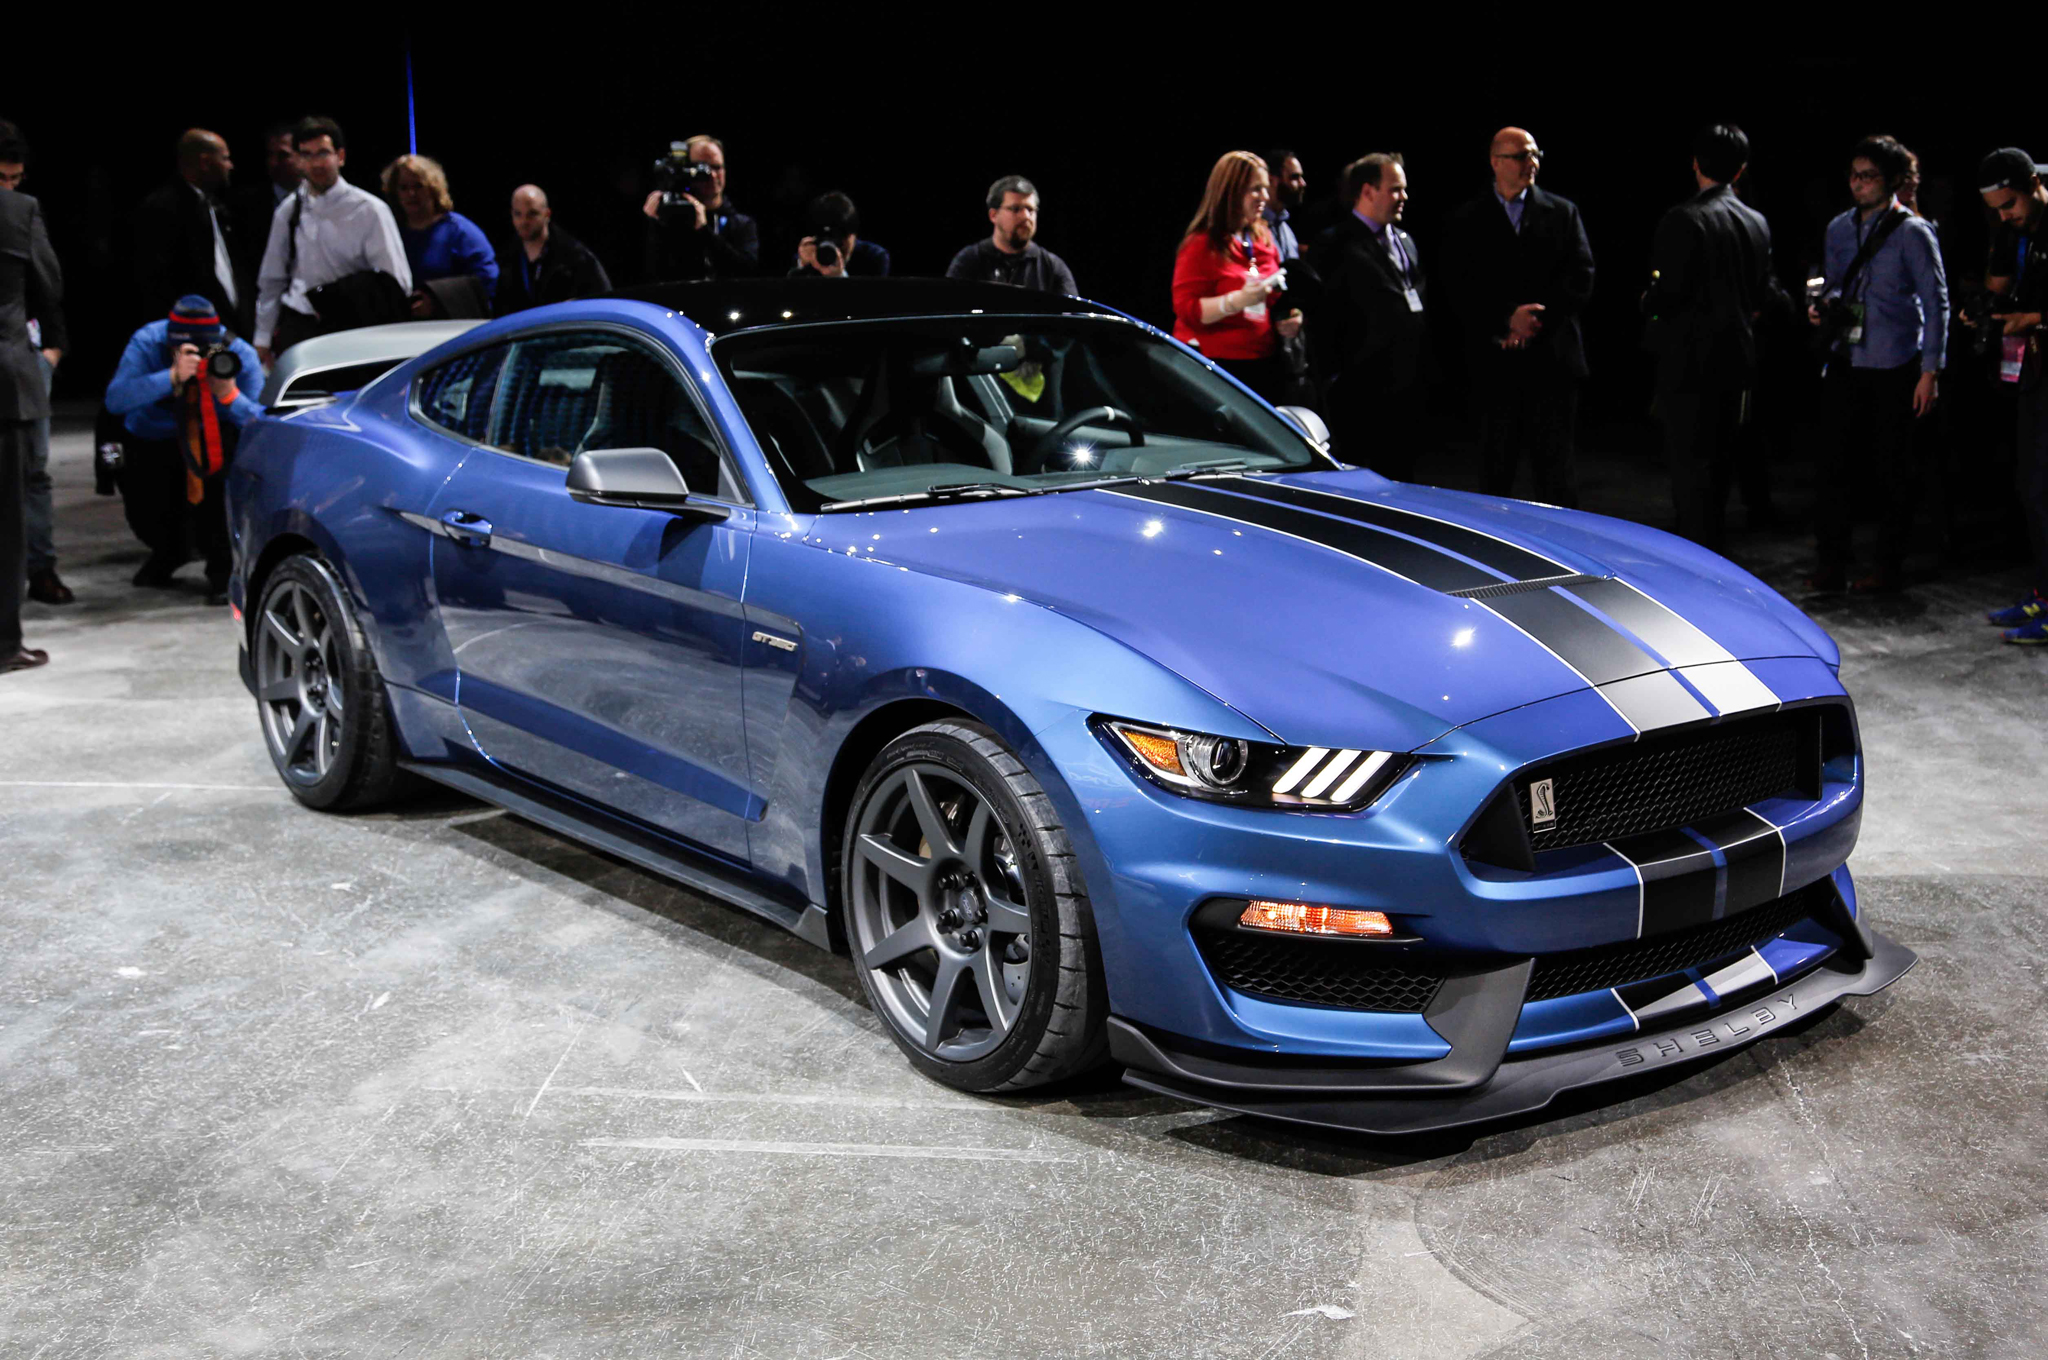 2015 ford shelby gt350 production run limited to 100 units motortrend